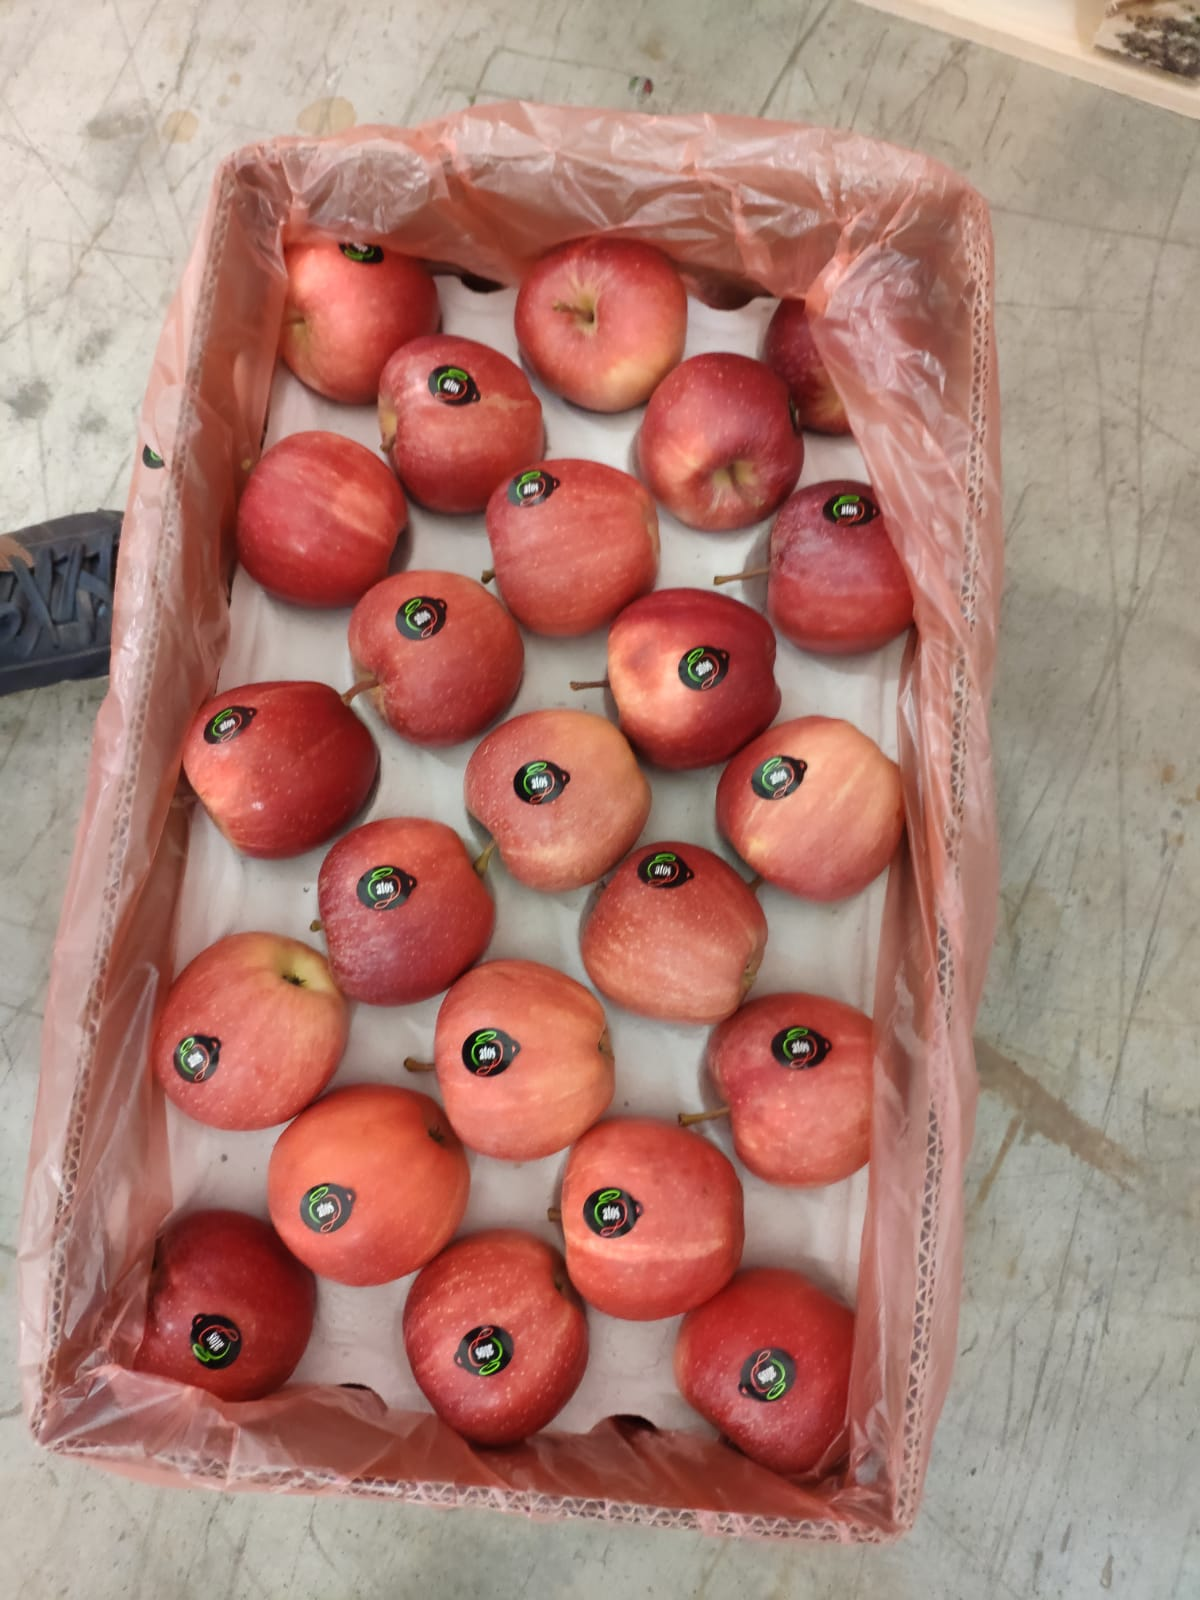 First Arrivals of Apples from Serbia to India